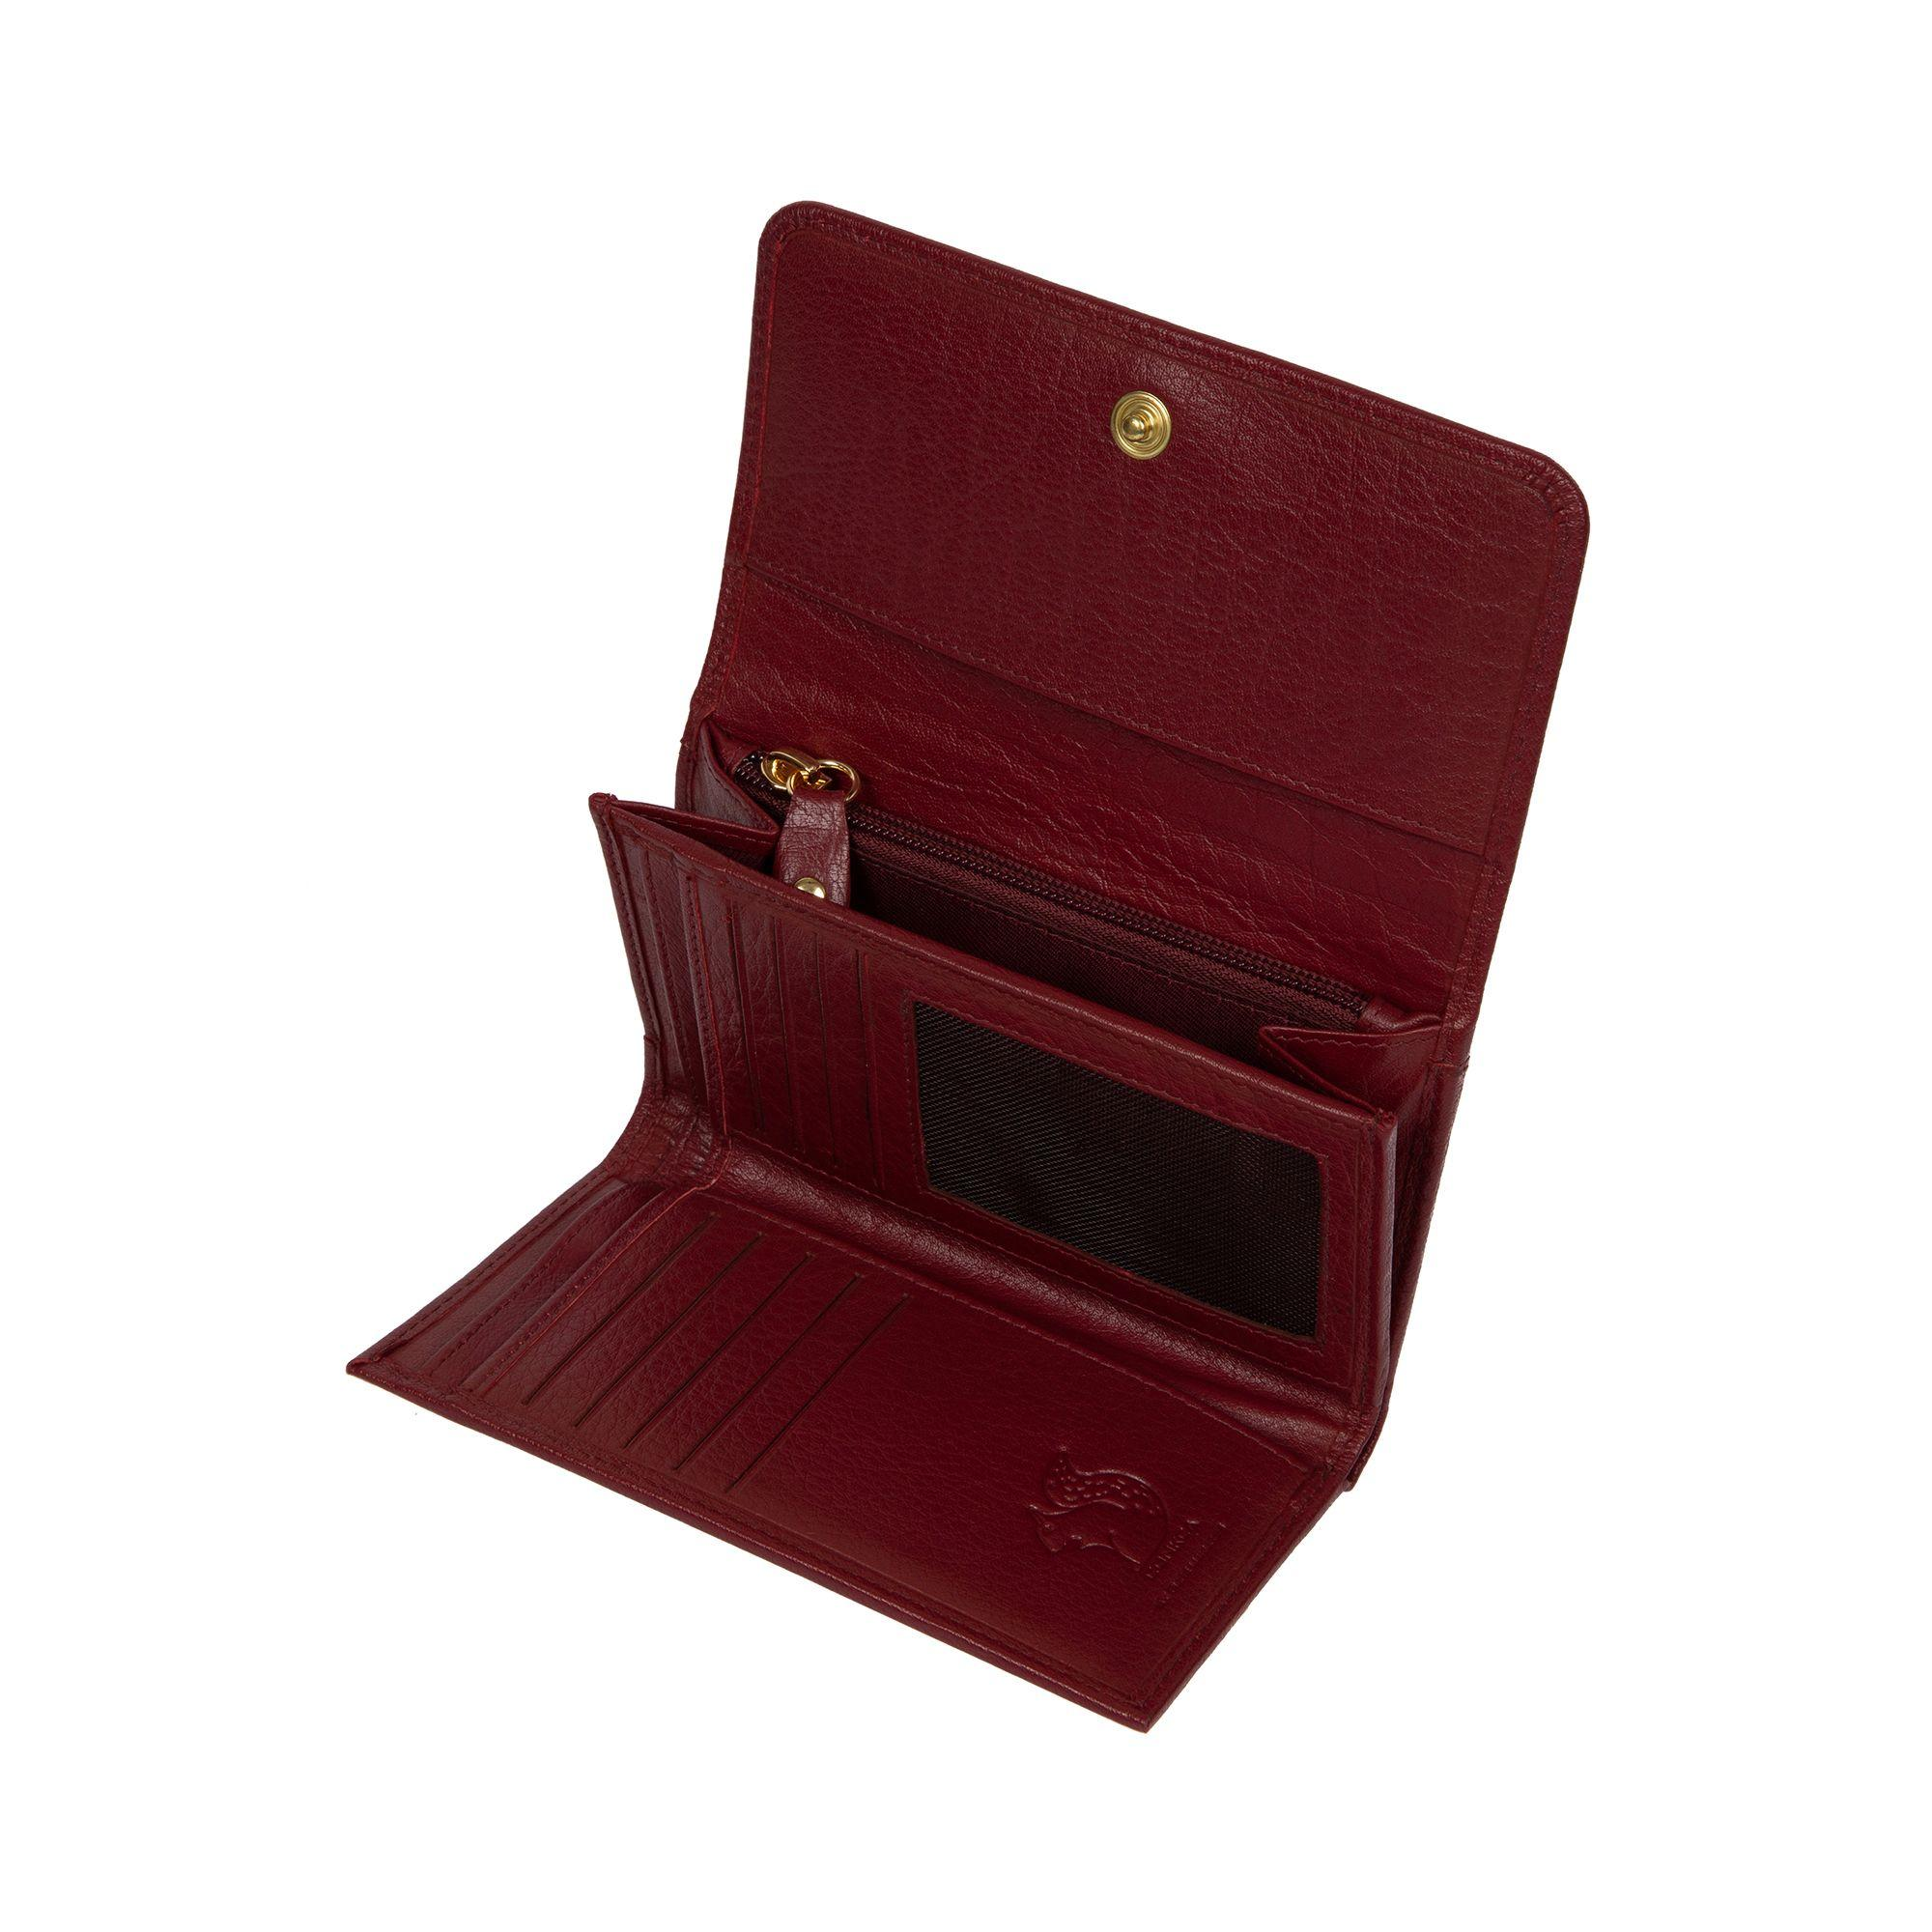 67441efff437b1 Conkca London - Deep Red 'colleen' Leather Rfid Purse - Lyst. View  fullscreen